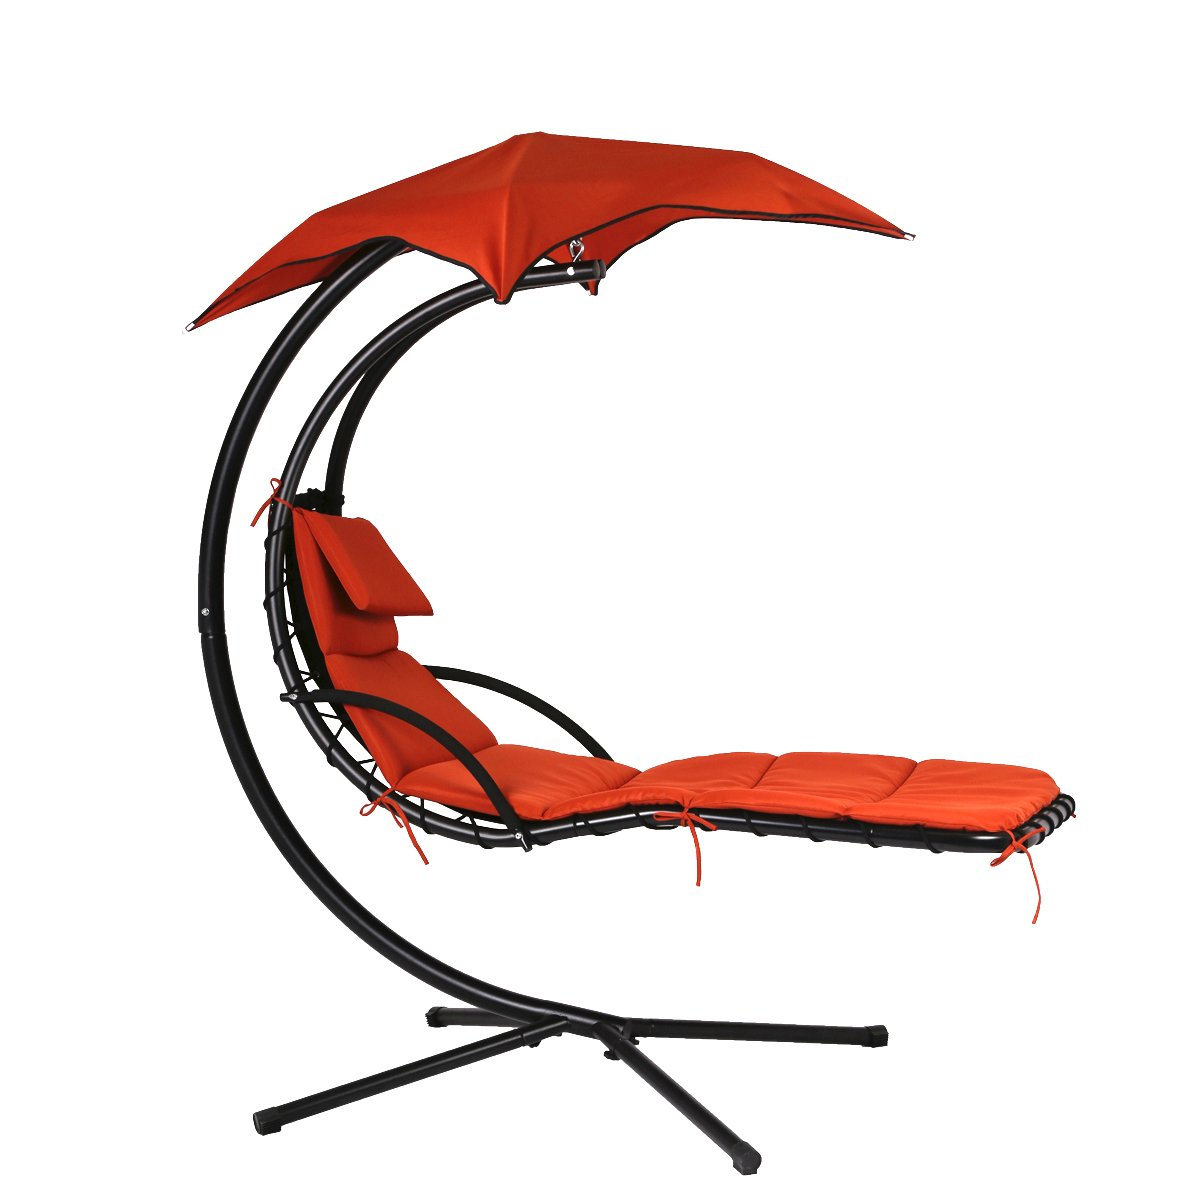 MR Direct New Hanging Chaise Lounger Chair Arc Stand Air Porch Swing Hammock Chair Canopy (Red)